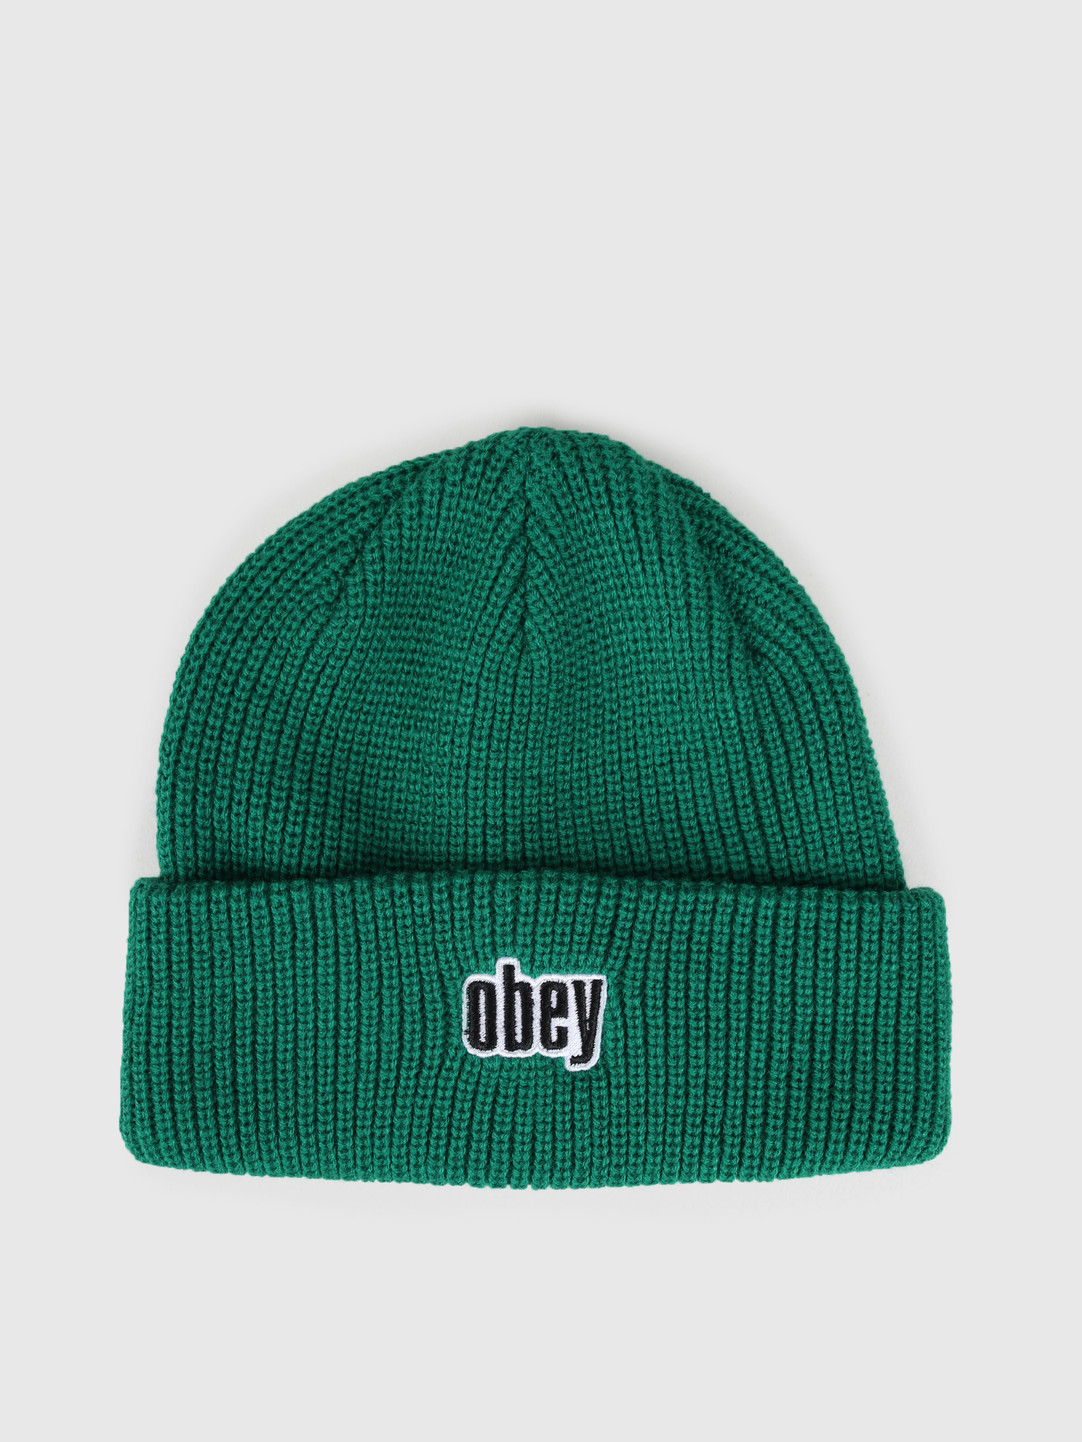 Obey Obey Jungle Beanie Growth Green 100030139Ggn